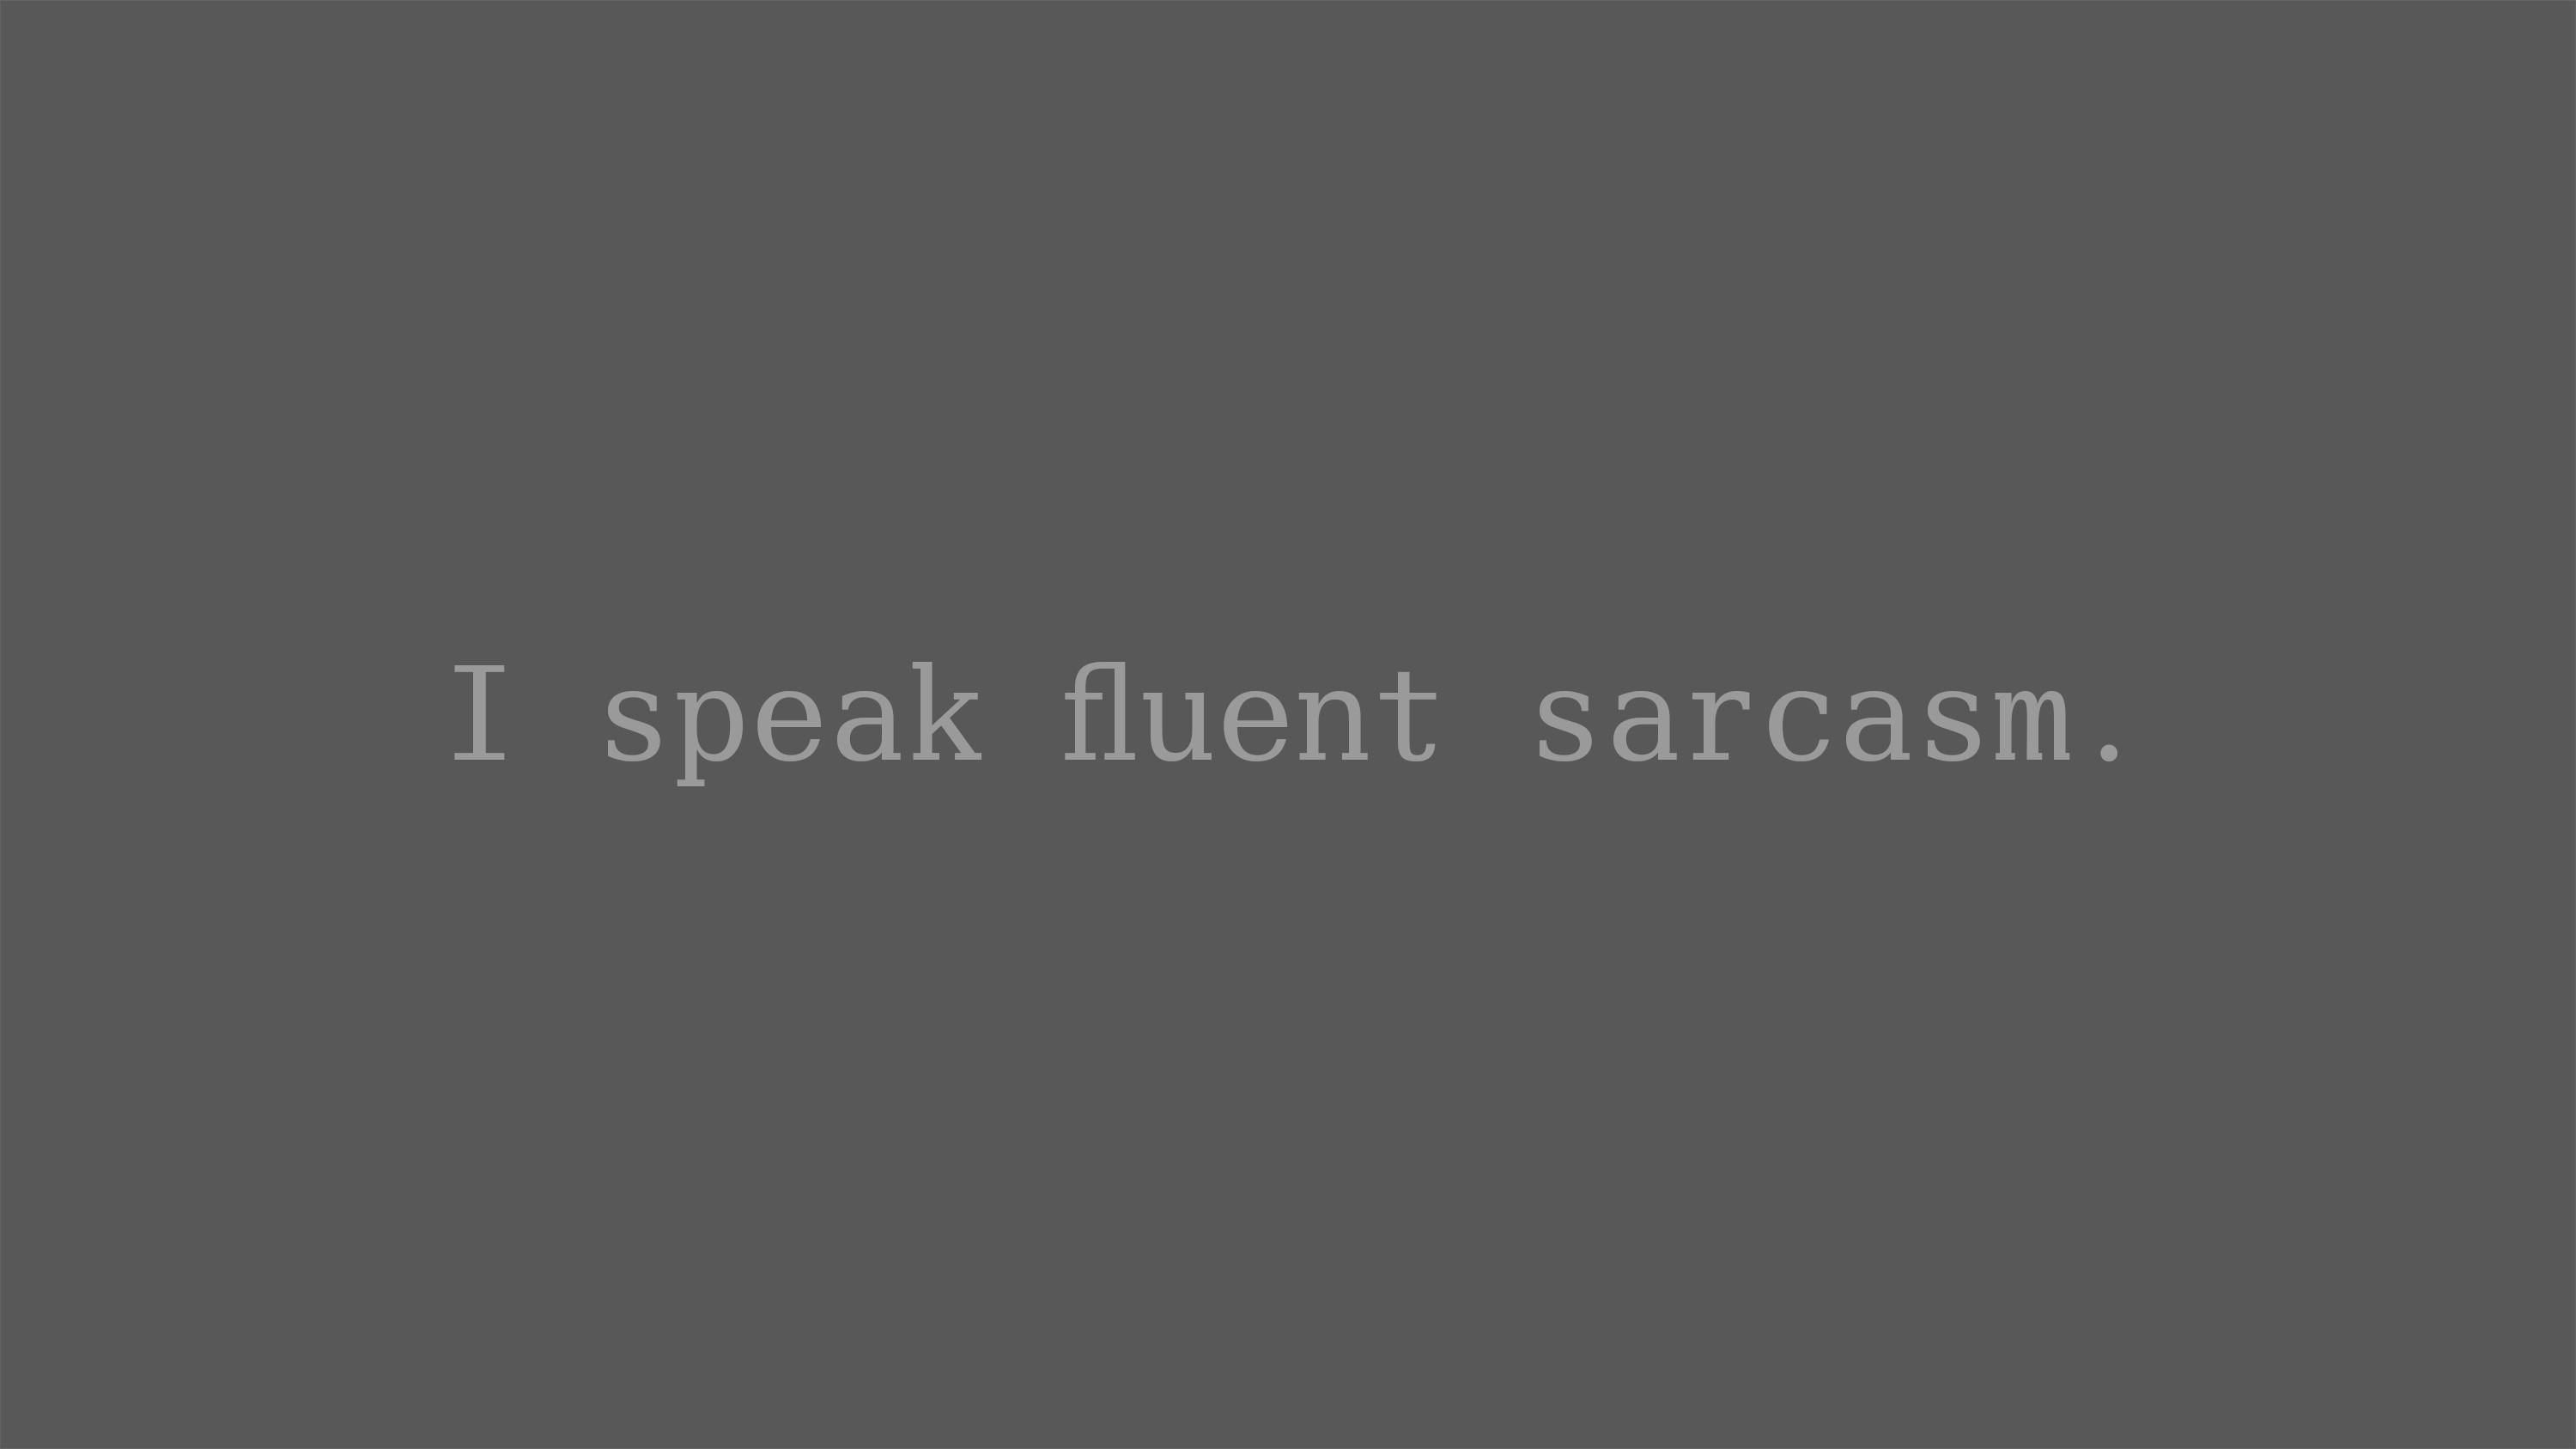 Download Sarcasm Wallpapers Gallery